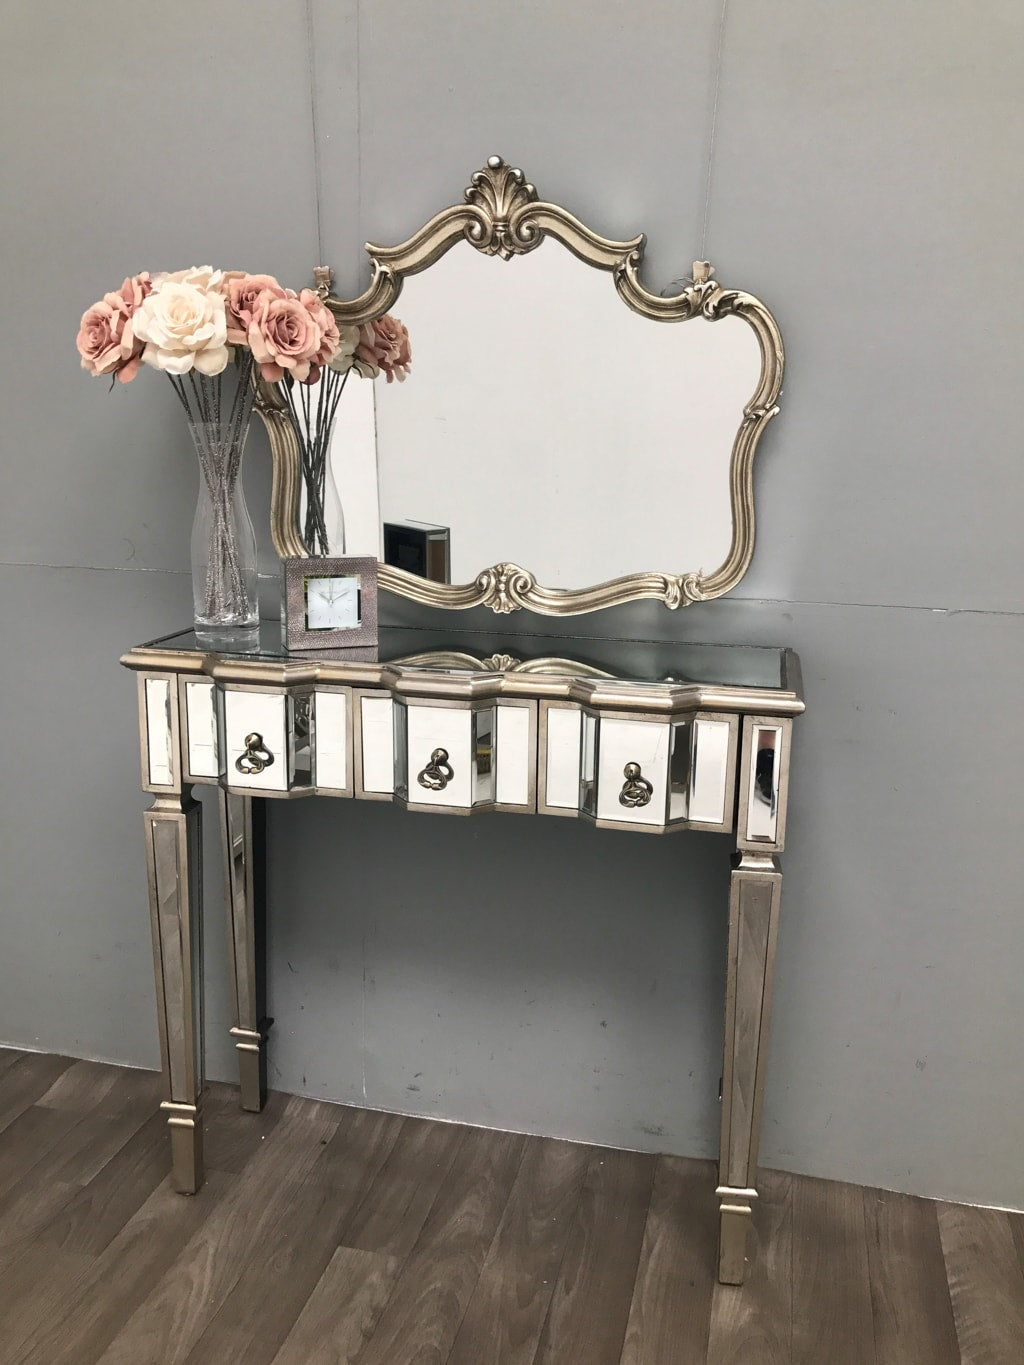 Slim vintage Mirrored Console Table 3 drawers